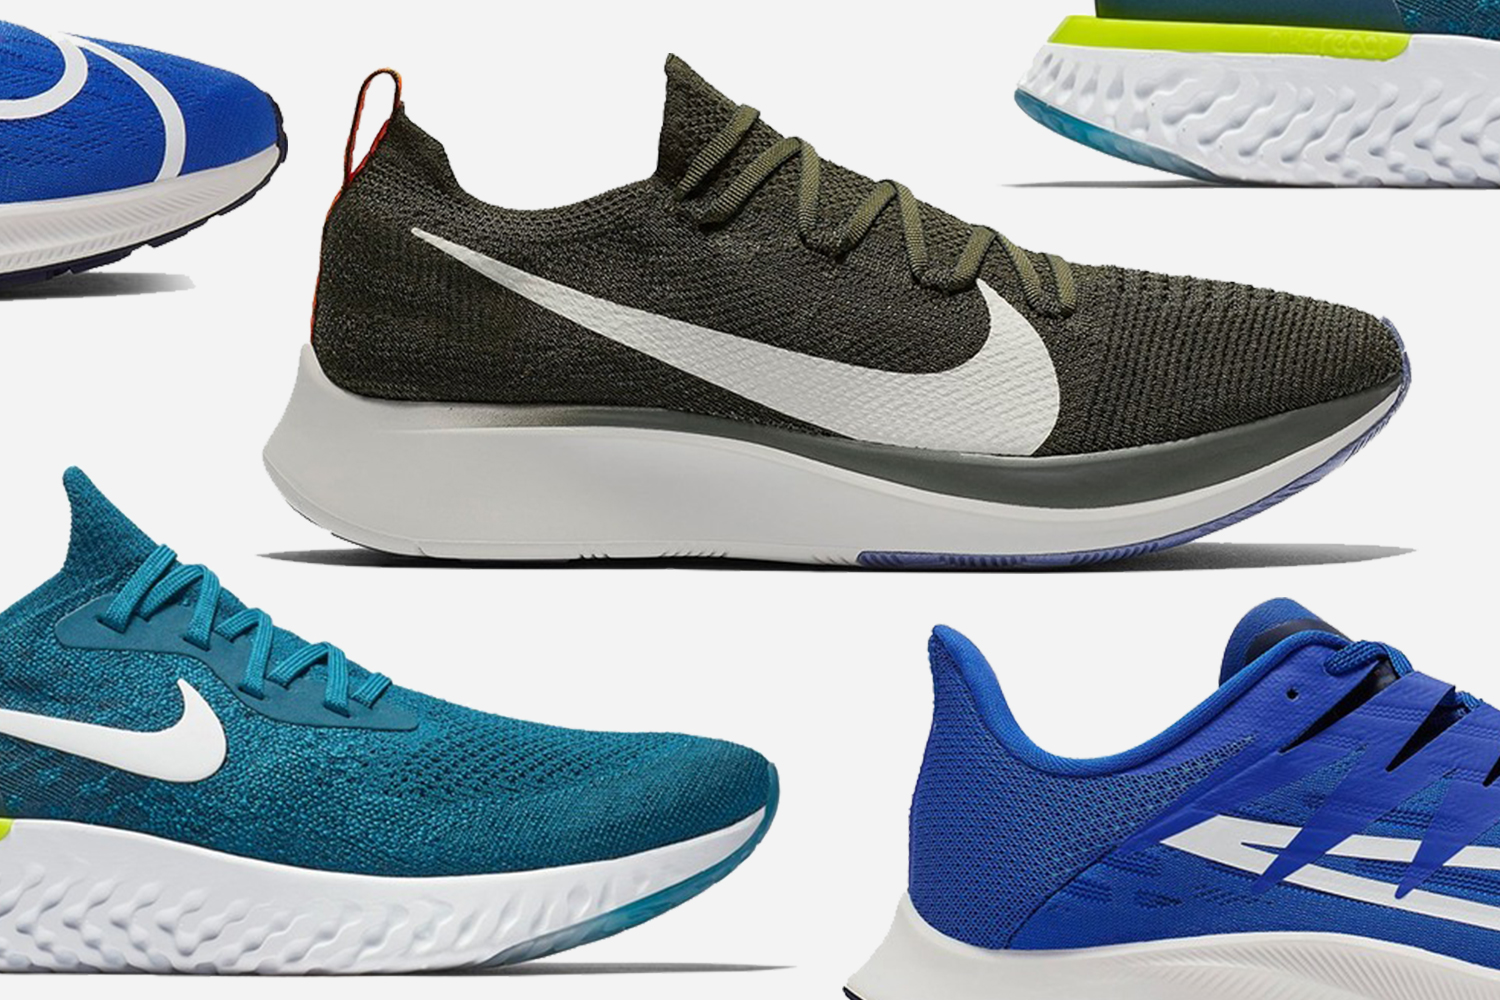 meilleur authentique b67fd 8c223 Nike Is Discounted Up to 50% Off, Including Flyknit Running ...